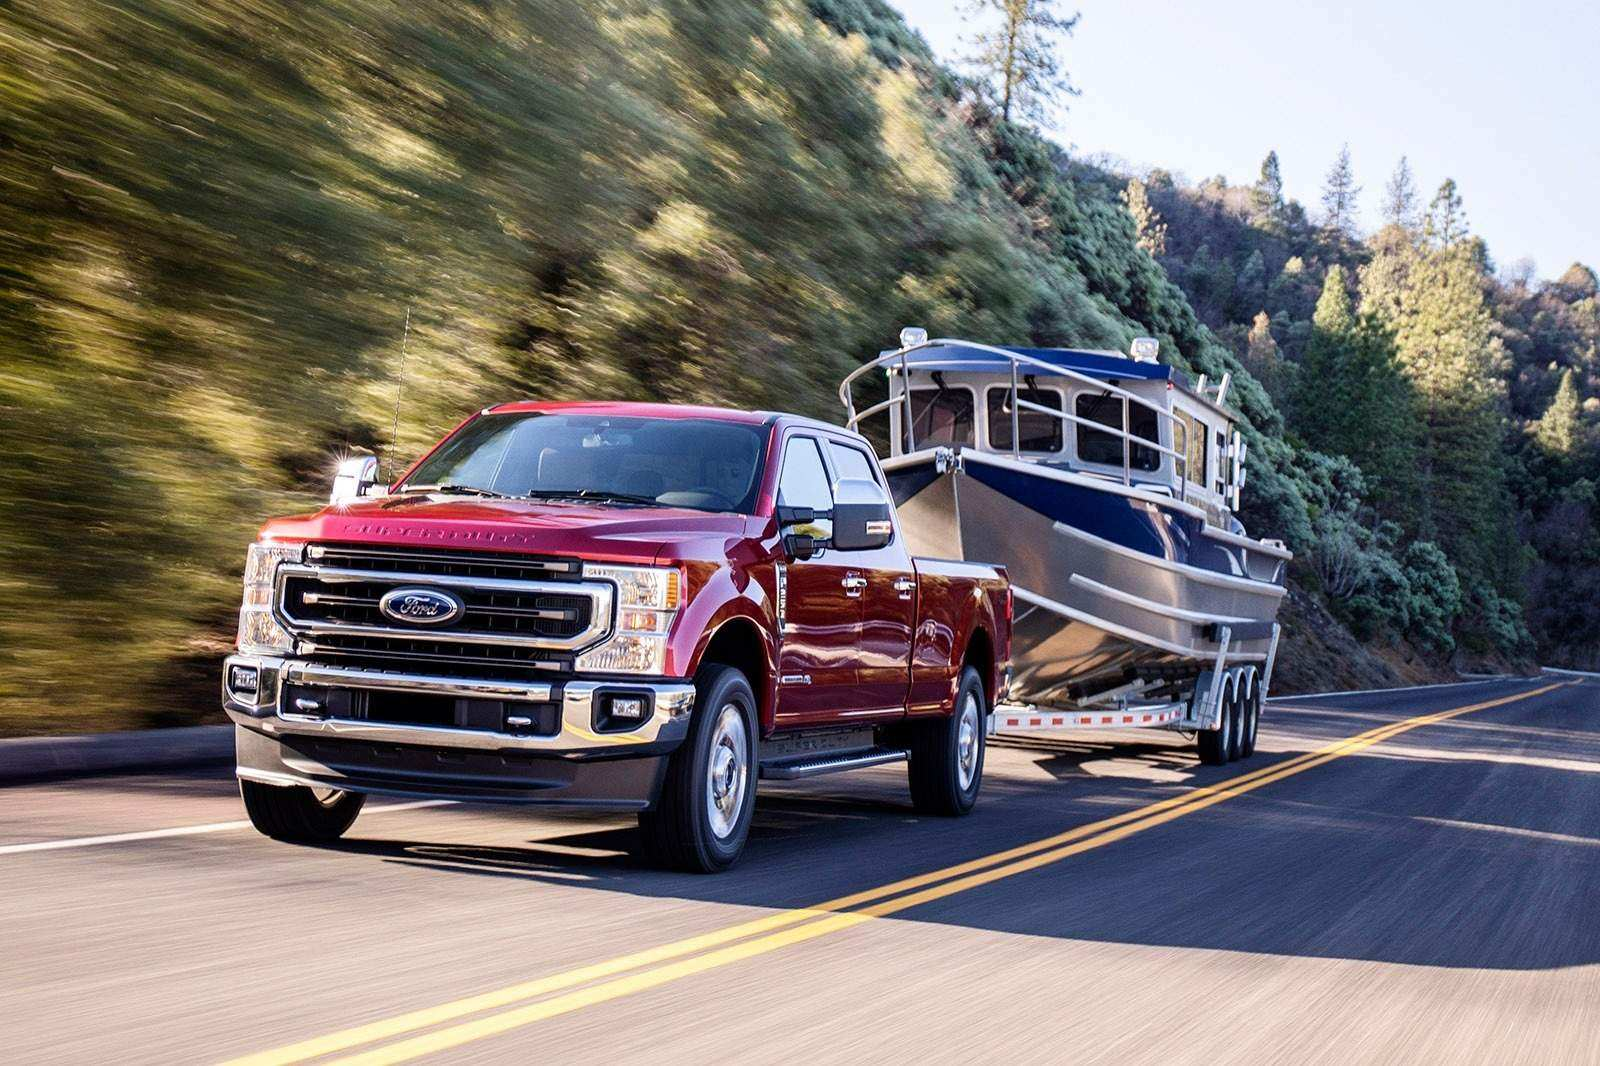 90 Concept of 2020 Ford F 150 Diesel Specs Redesign and Concept with 2020 Ford F 150 Diesel Specs